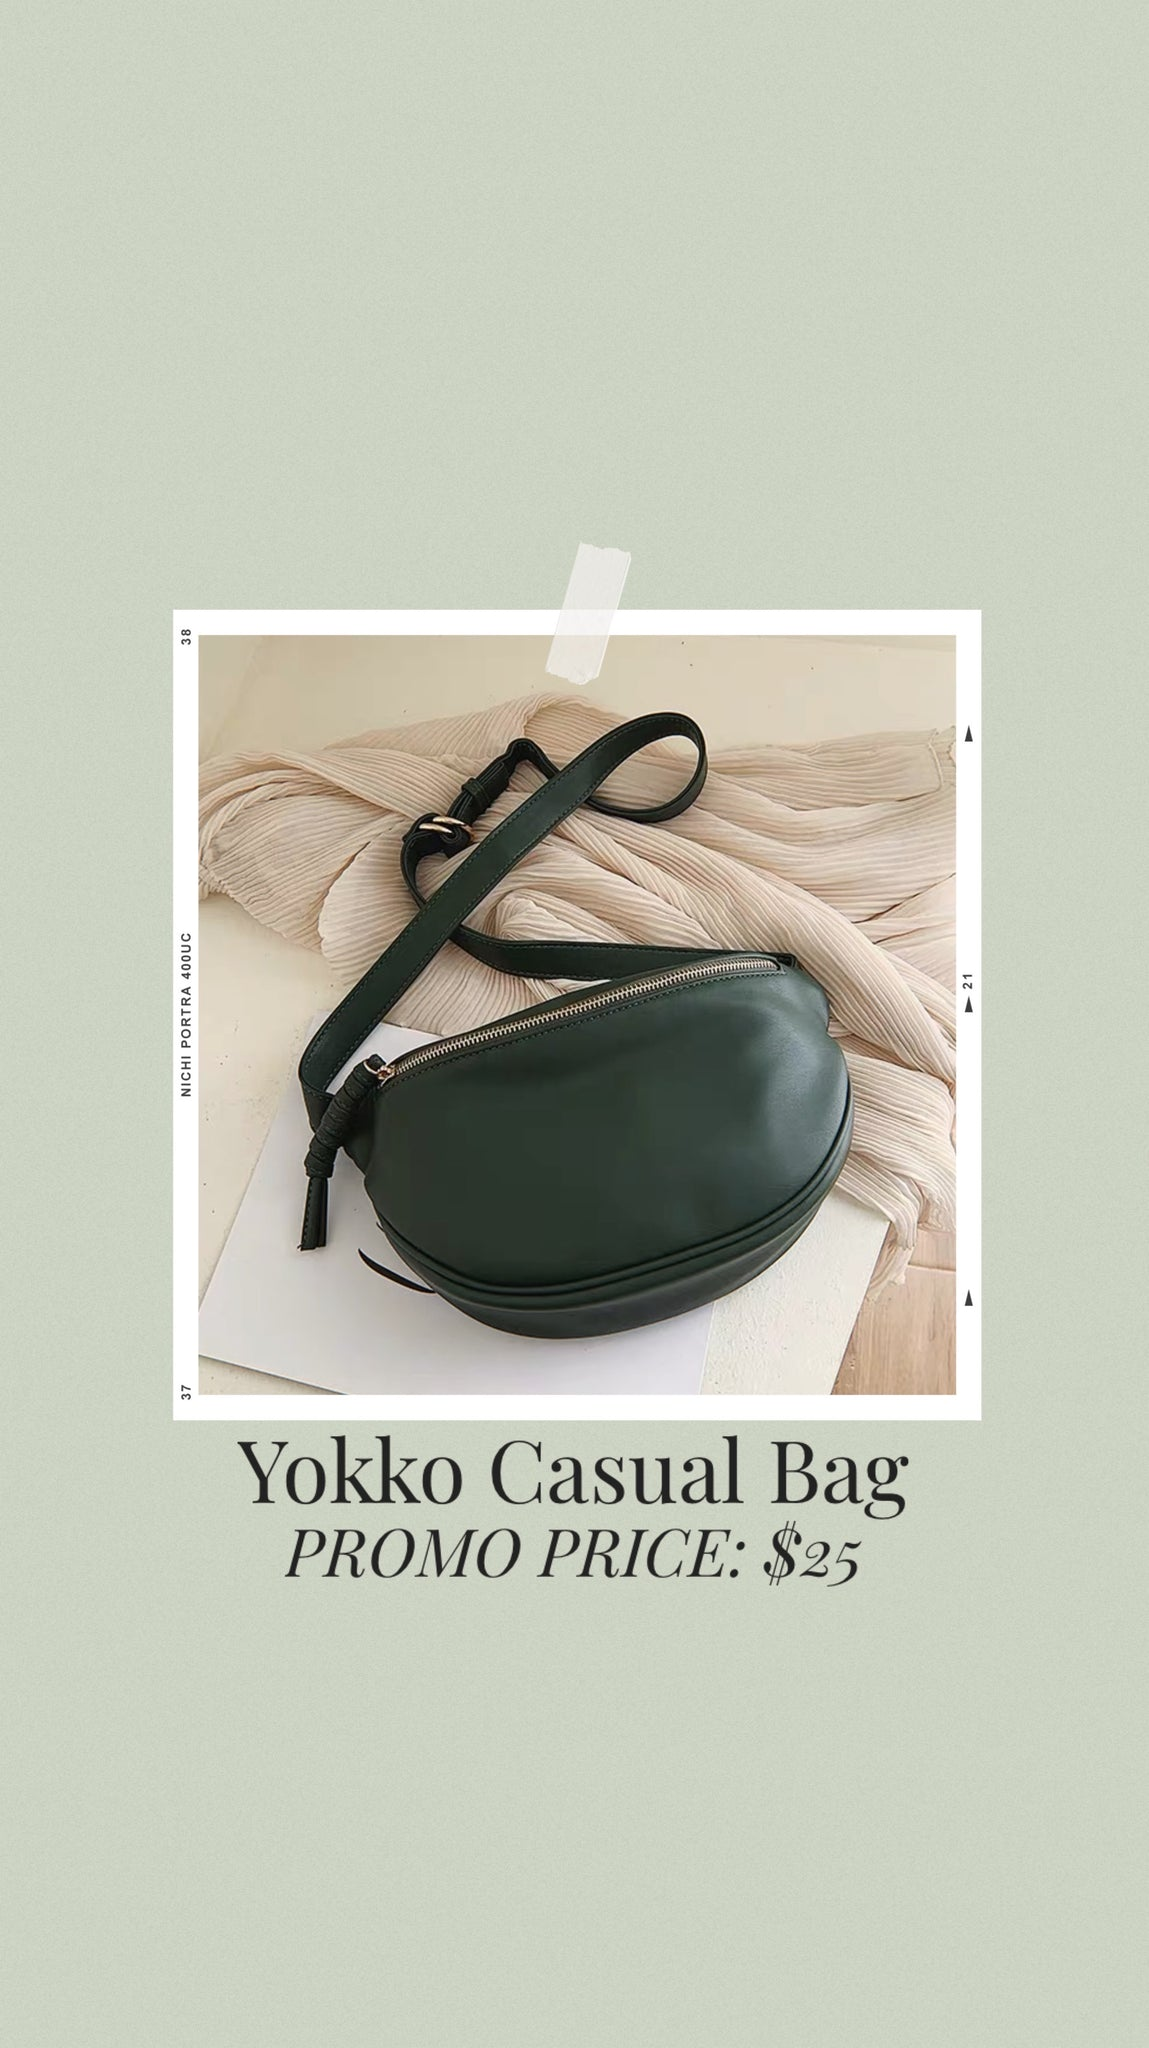 Yokko Casual Bag